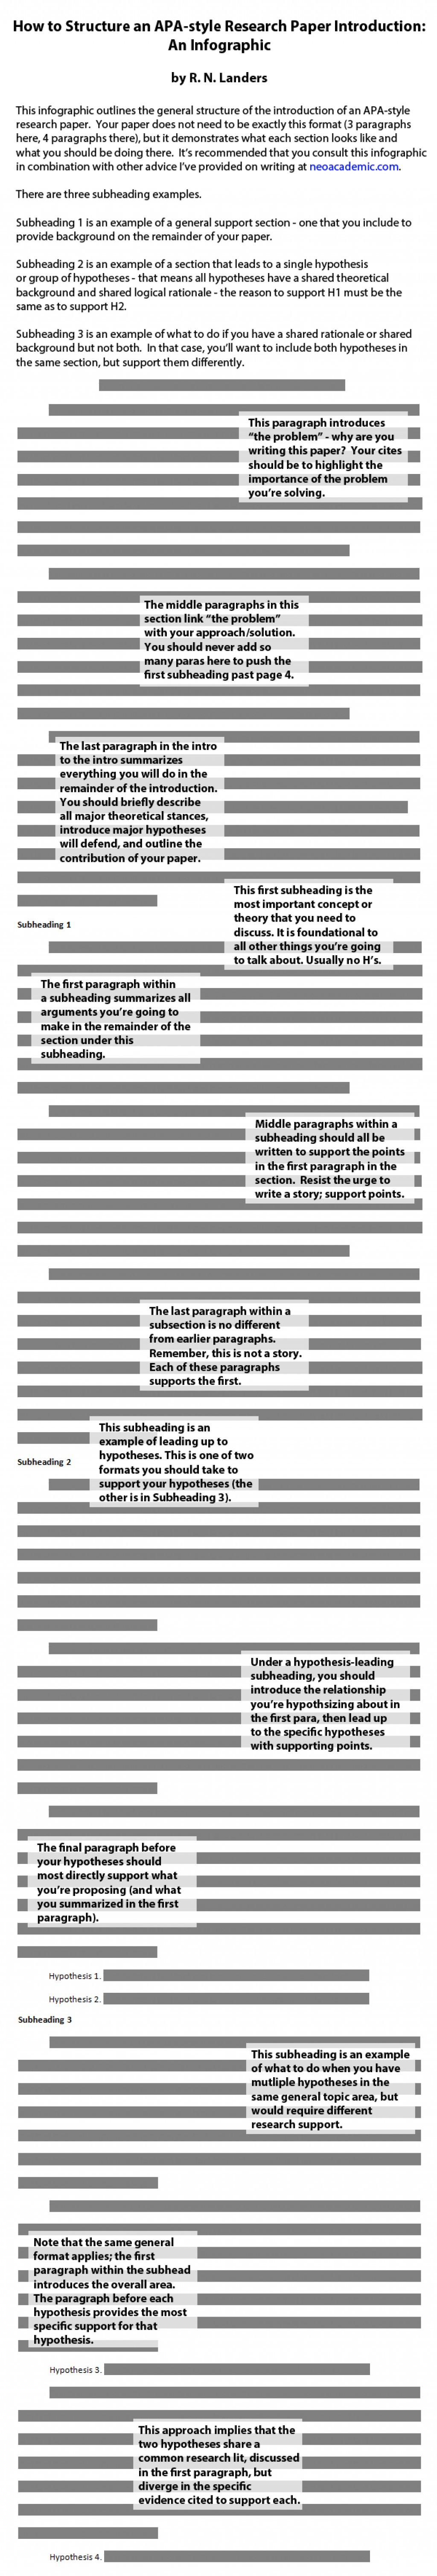 007 Intro Infographic2 Research Paper Writingn Introduction To Top Writing An A Steps In Large